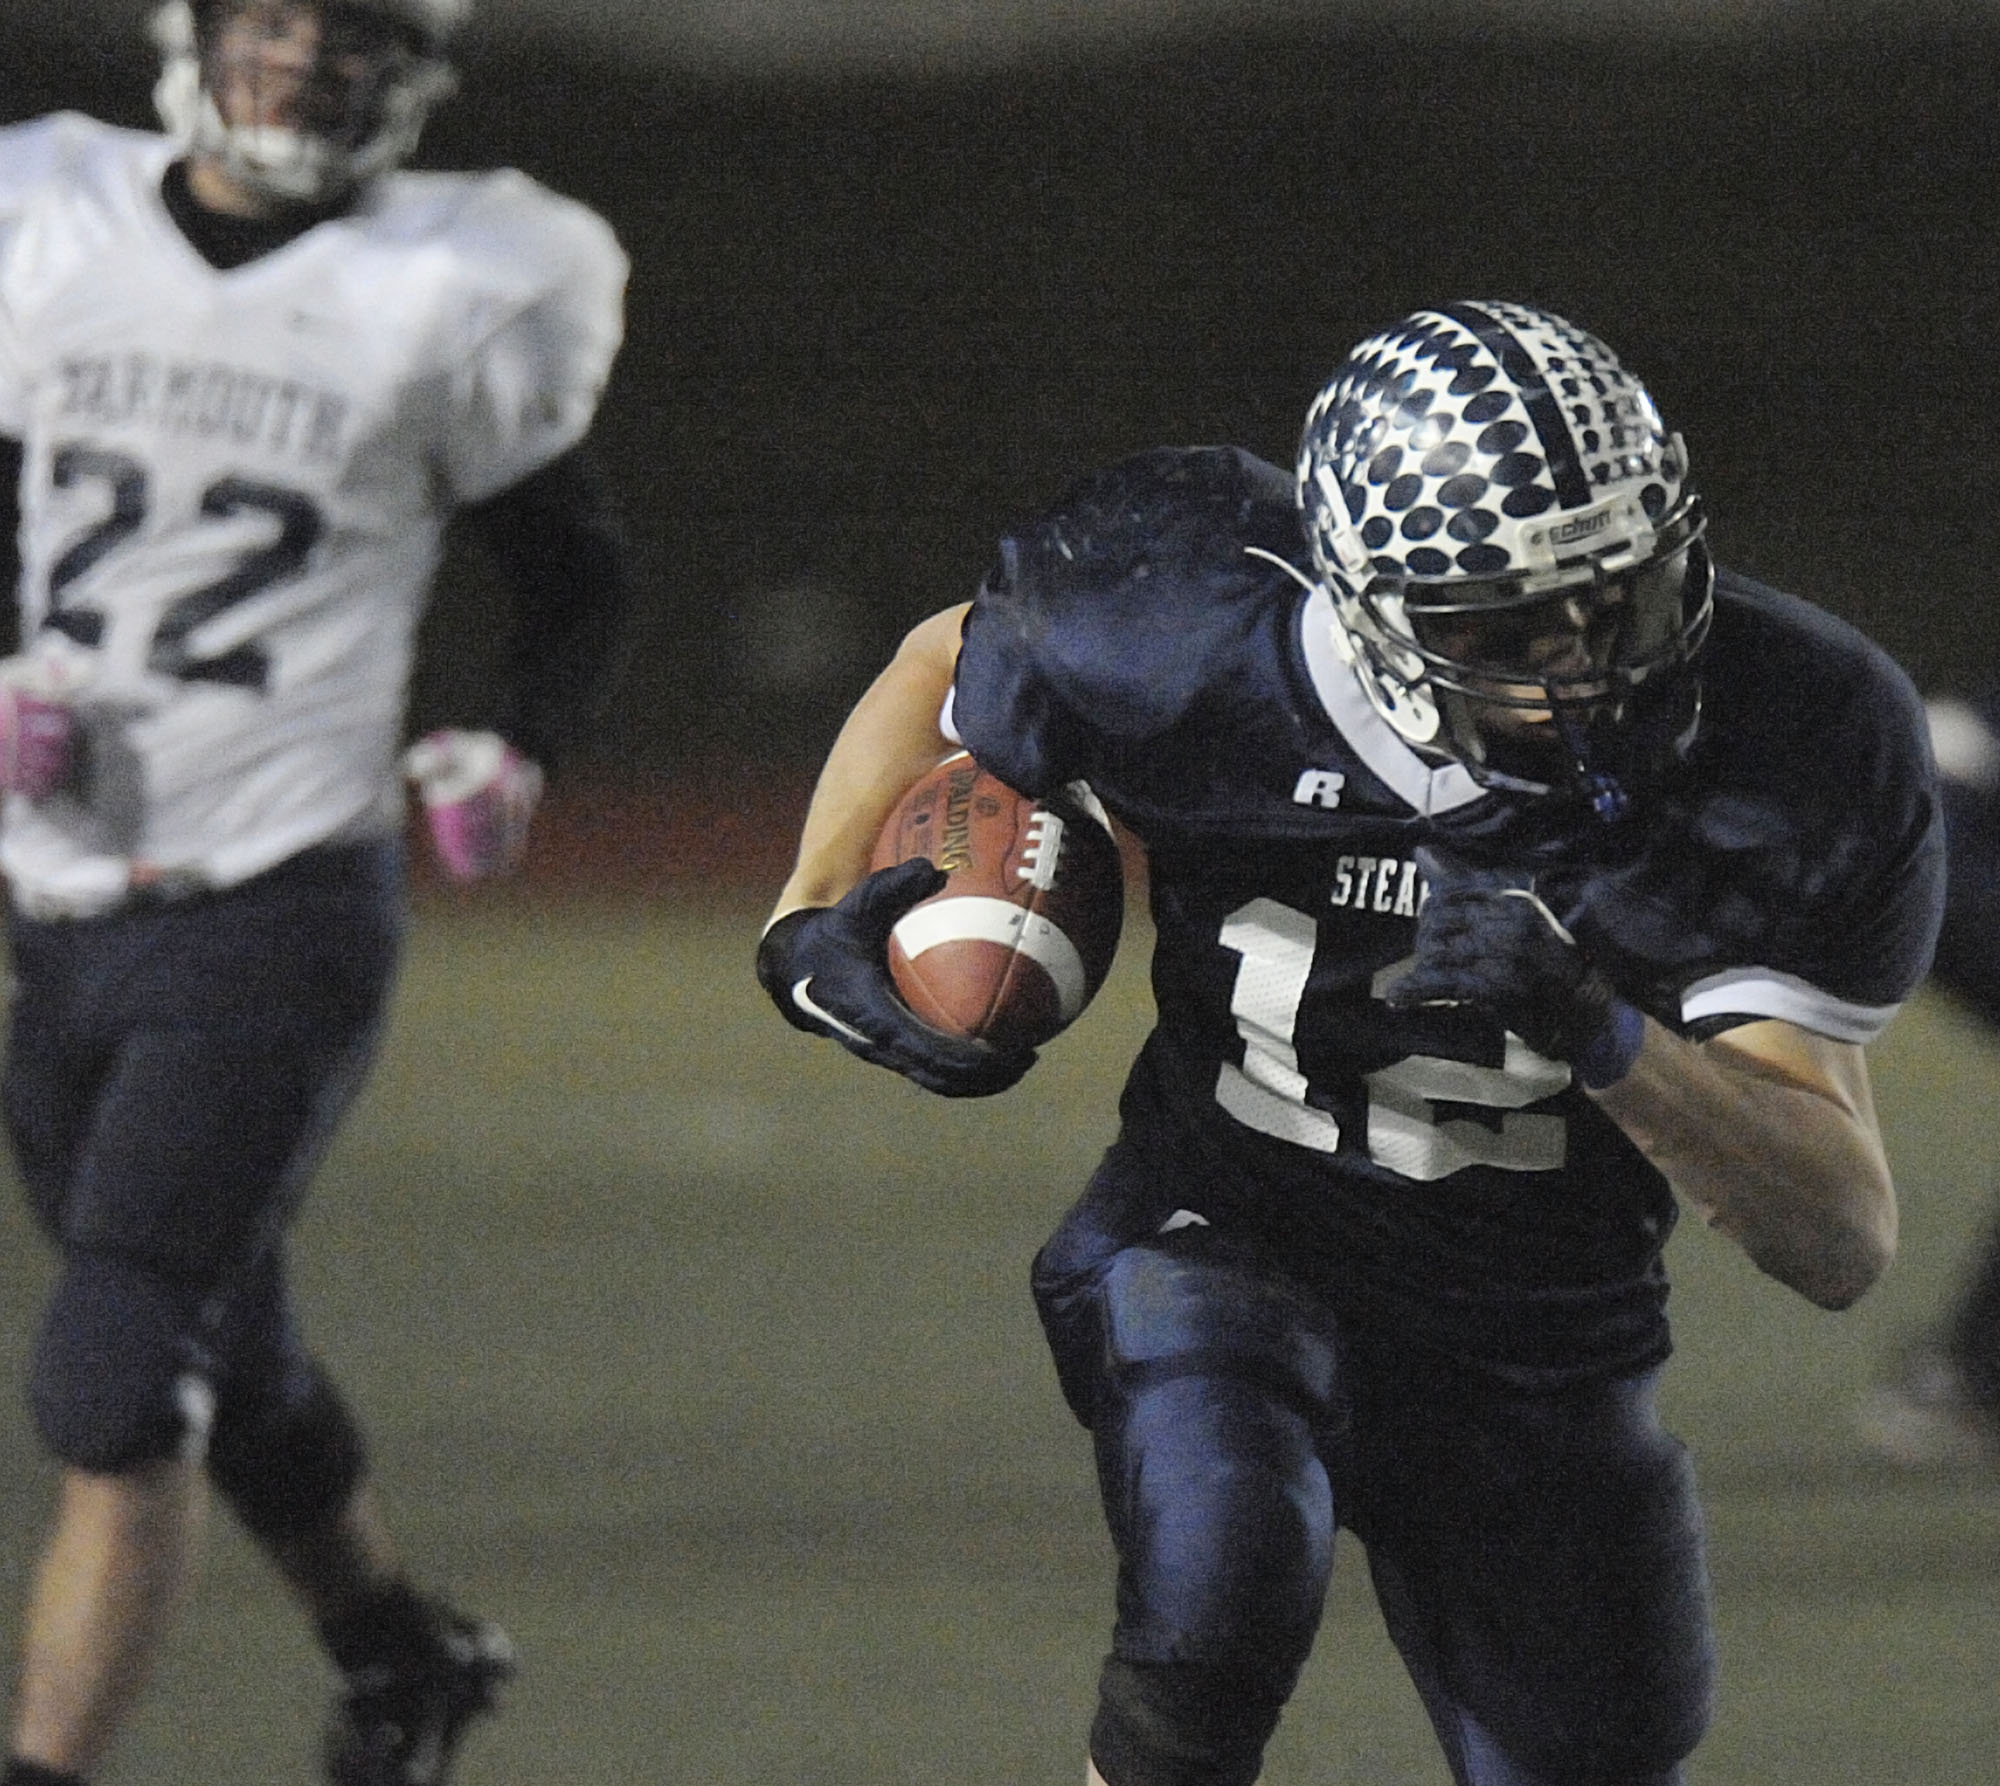 Veteran Yarmouth team seeks second straight 'C' football title